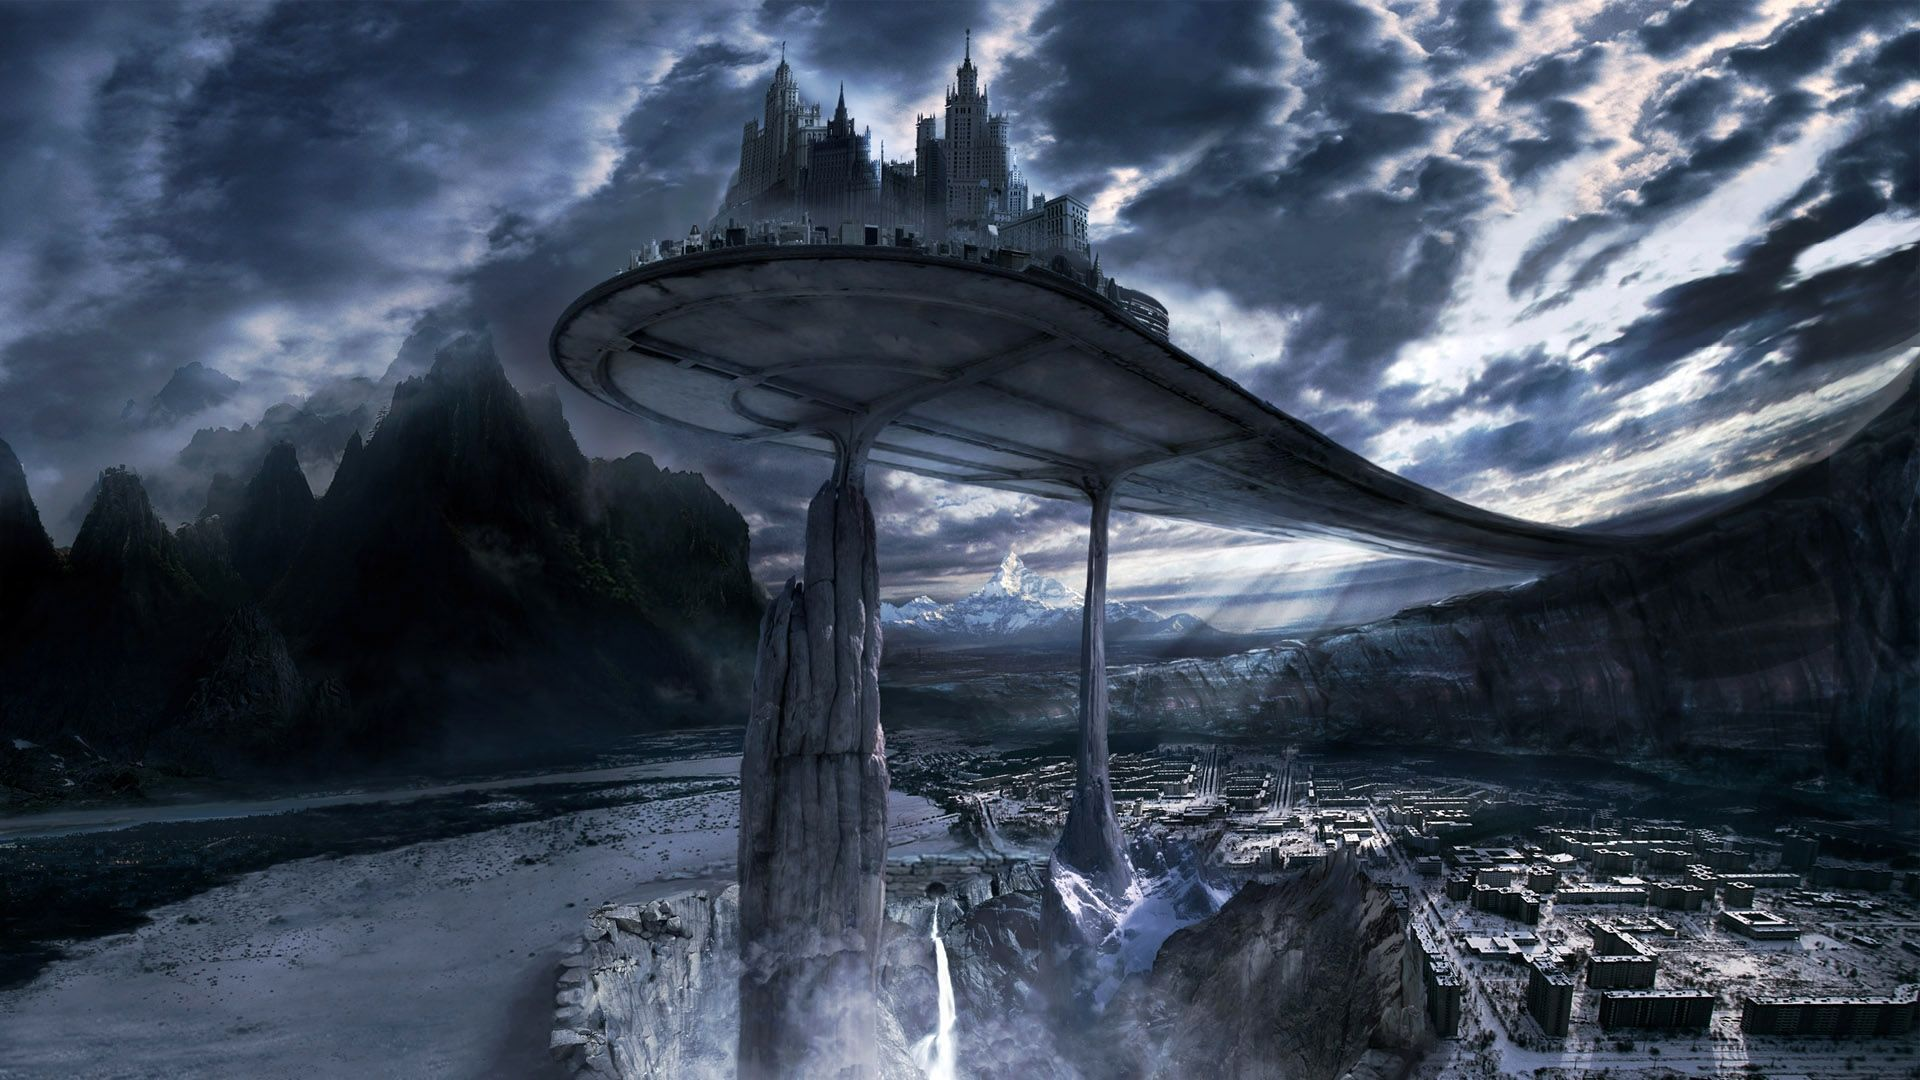 http-all-images-net-best-d-fantasy-places-hd-wallpaper-wp5806572